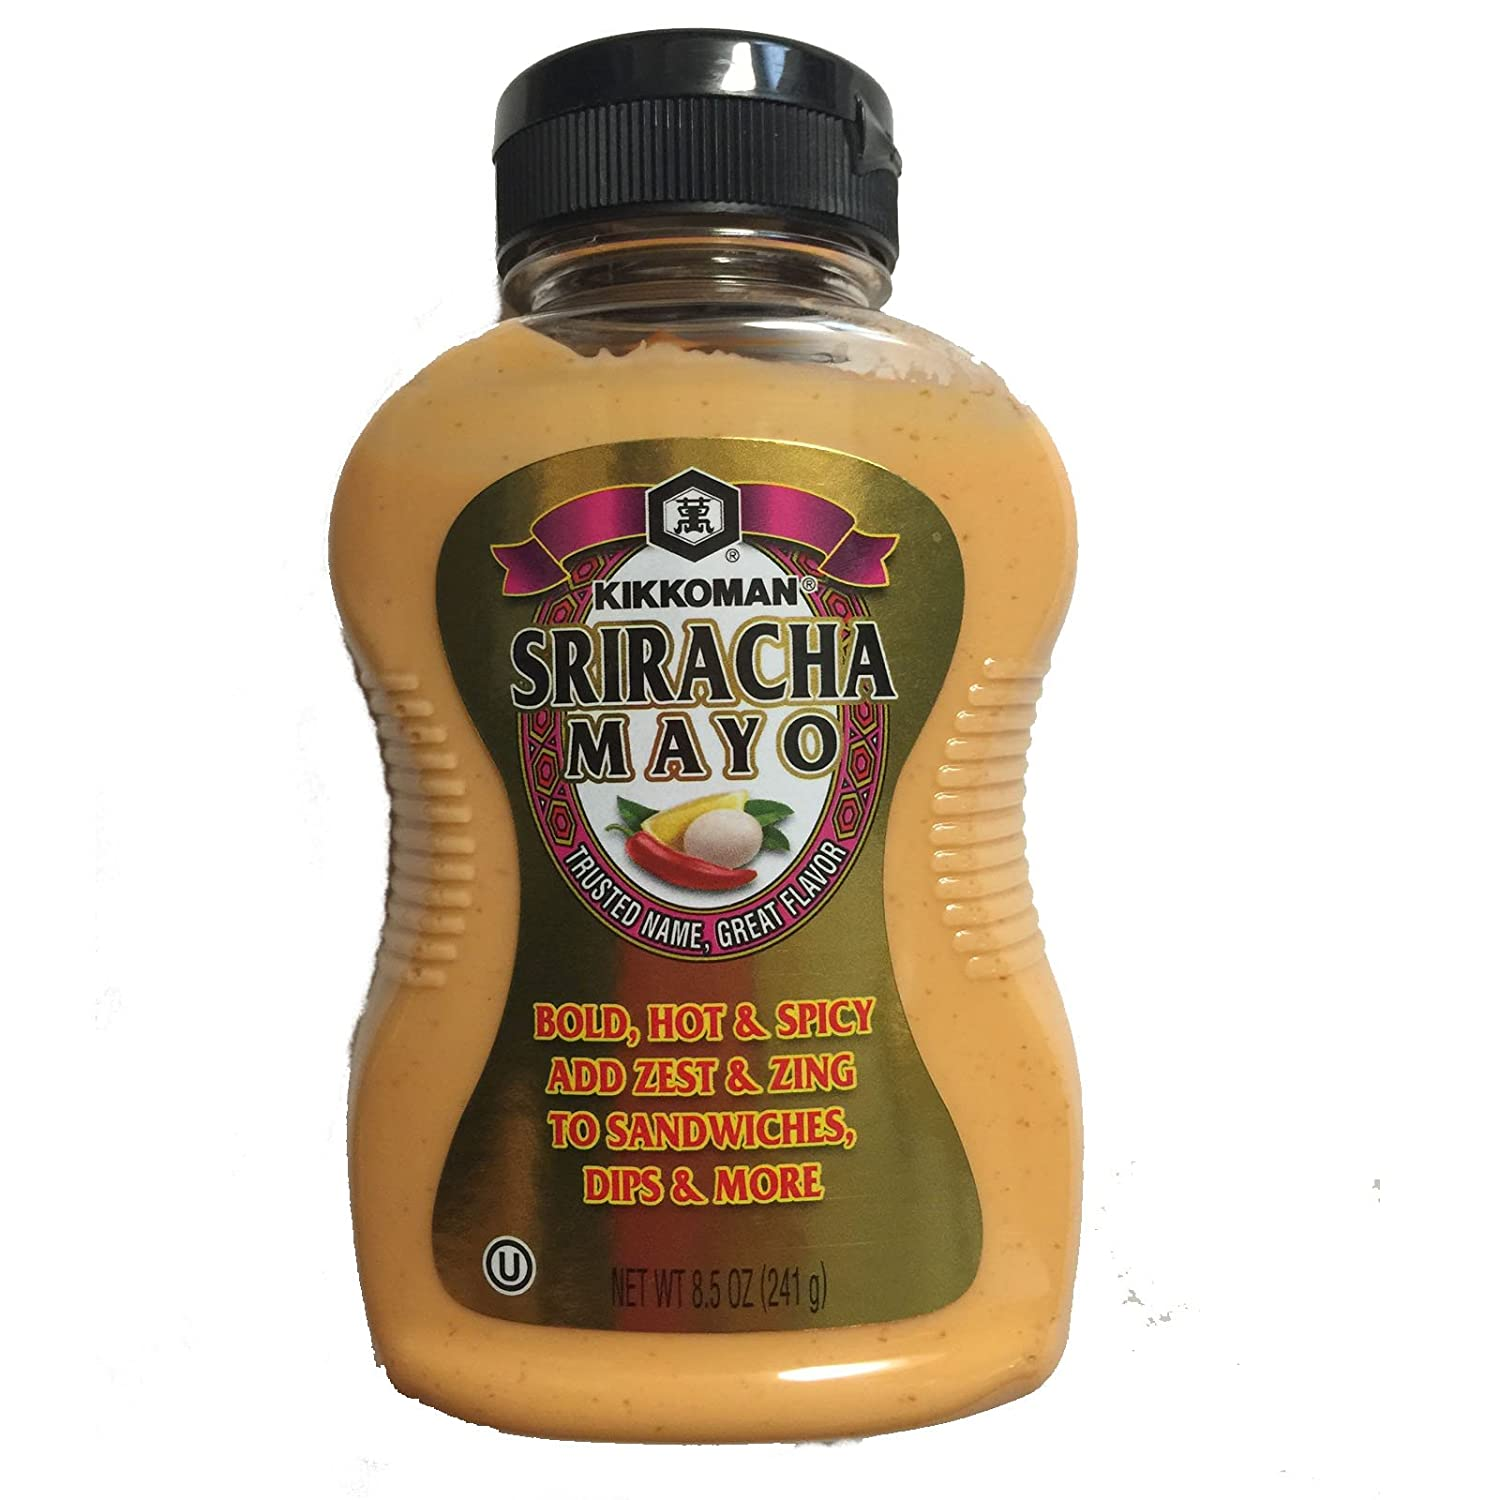 Opening large release Challenge the lowest price sale Kikkoman Sriracha Mayo 8.5 Pack Ounce 1 Of